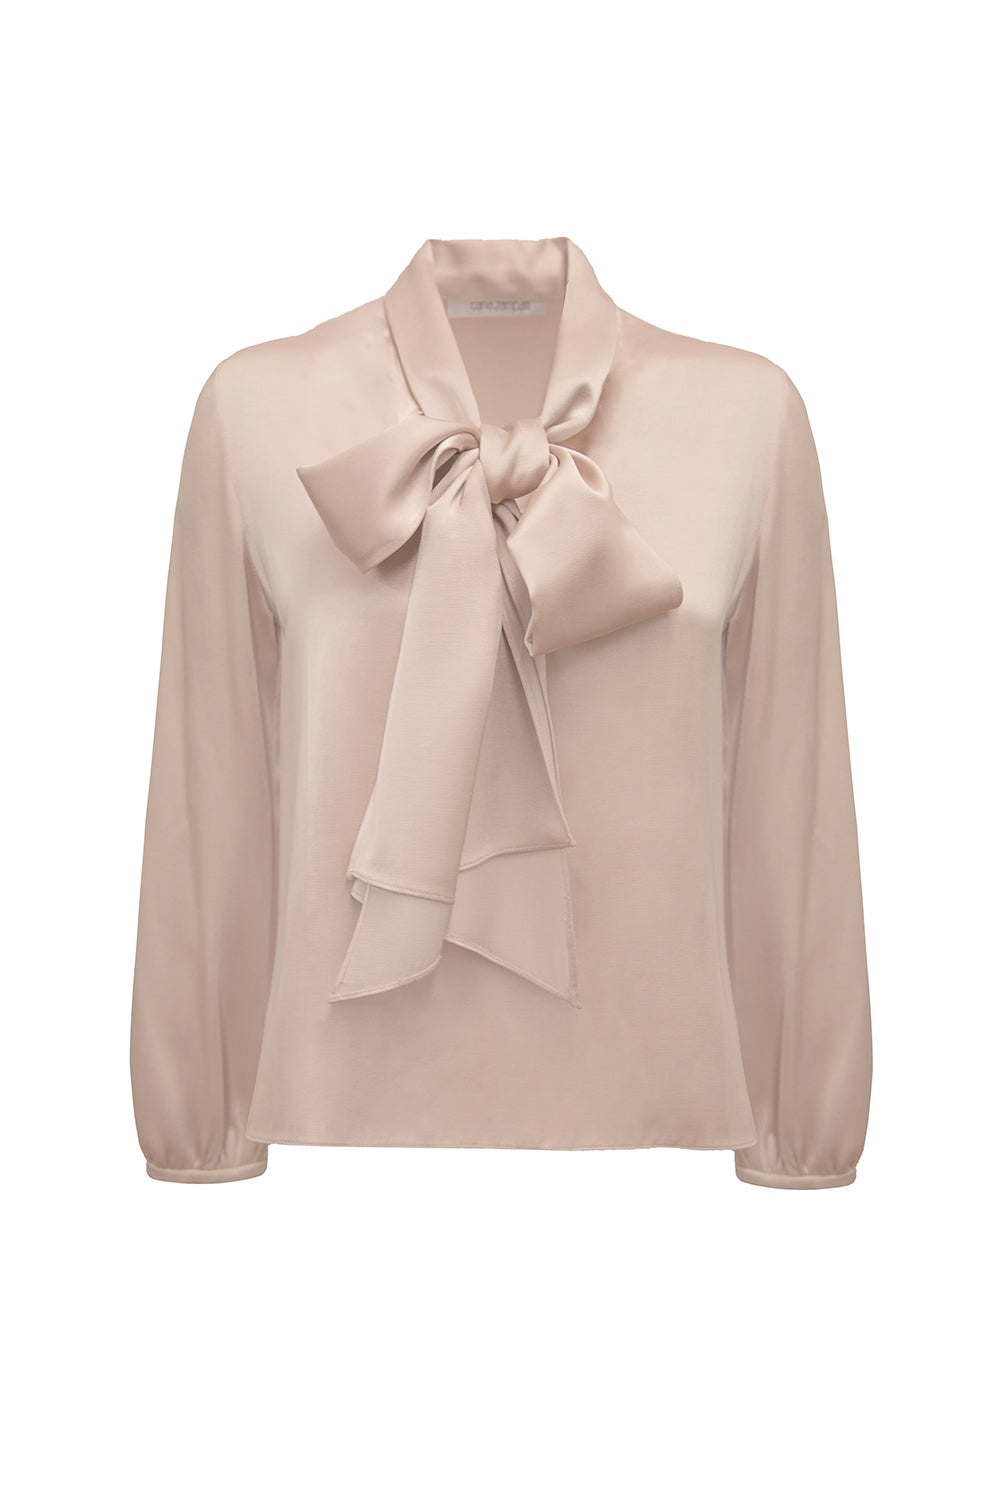 TRIBECA GLAM TIE NECK SHIRT